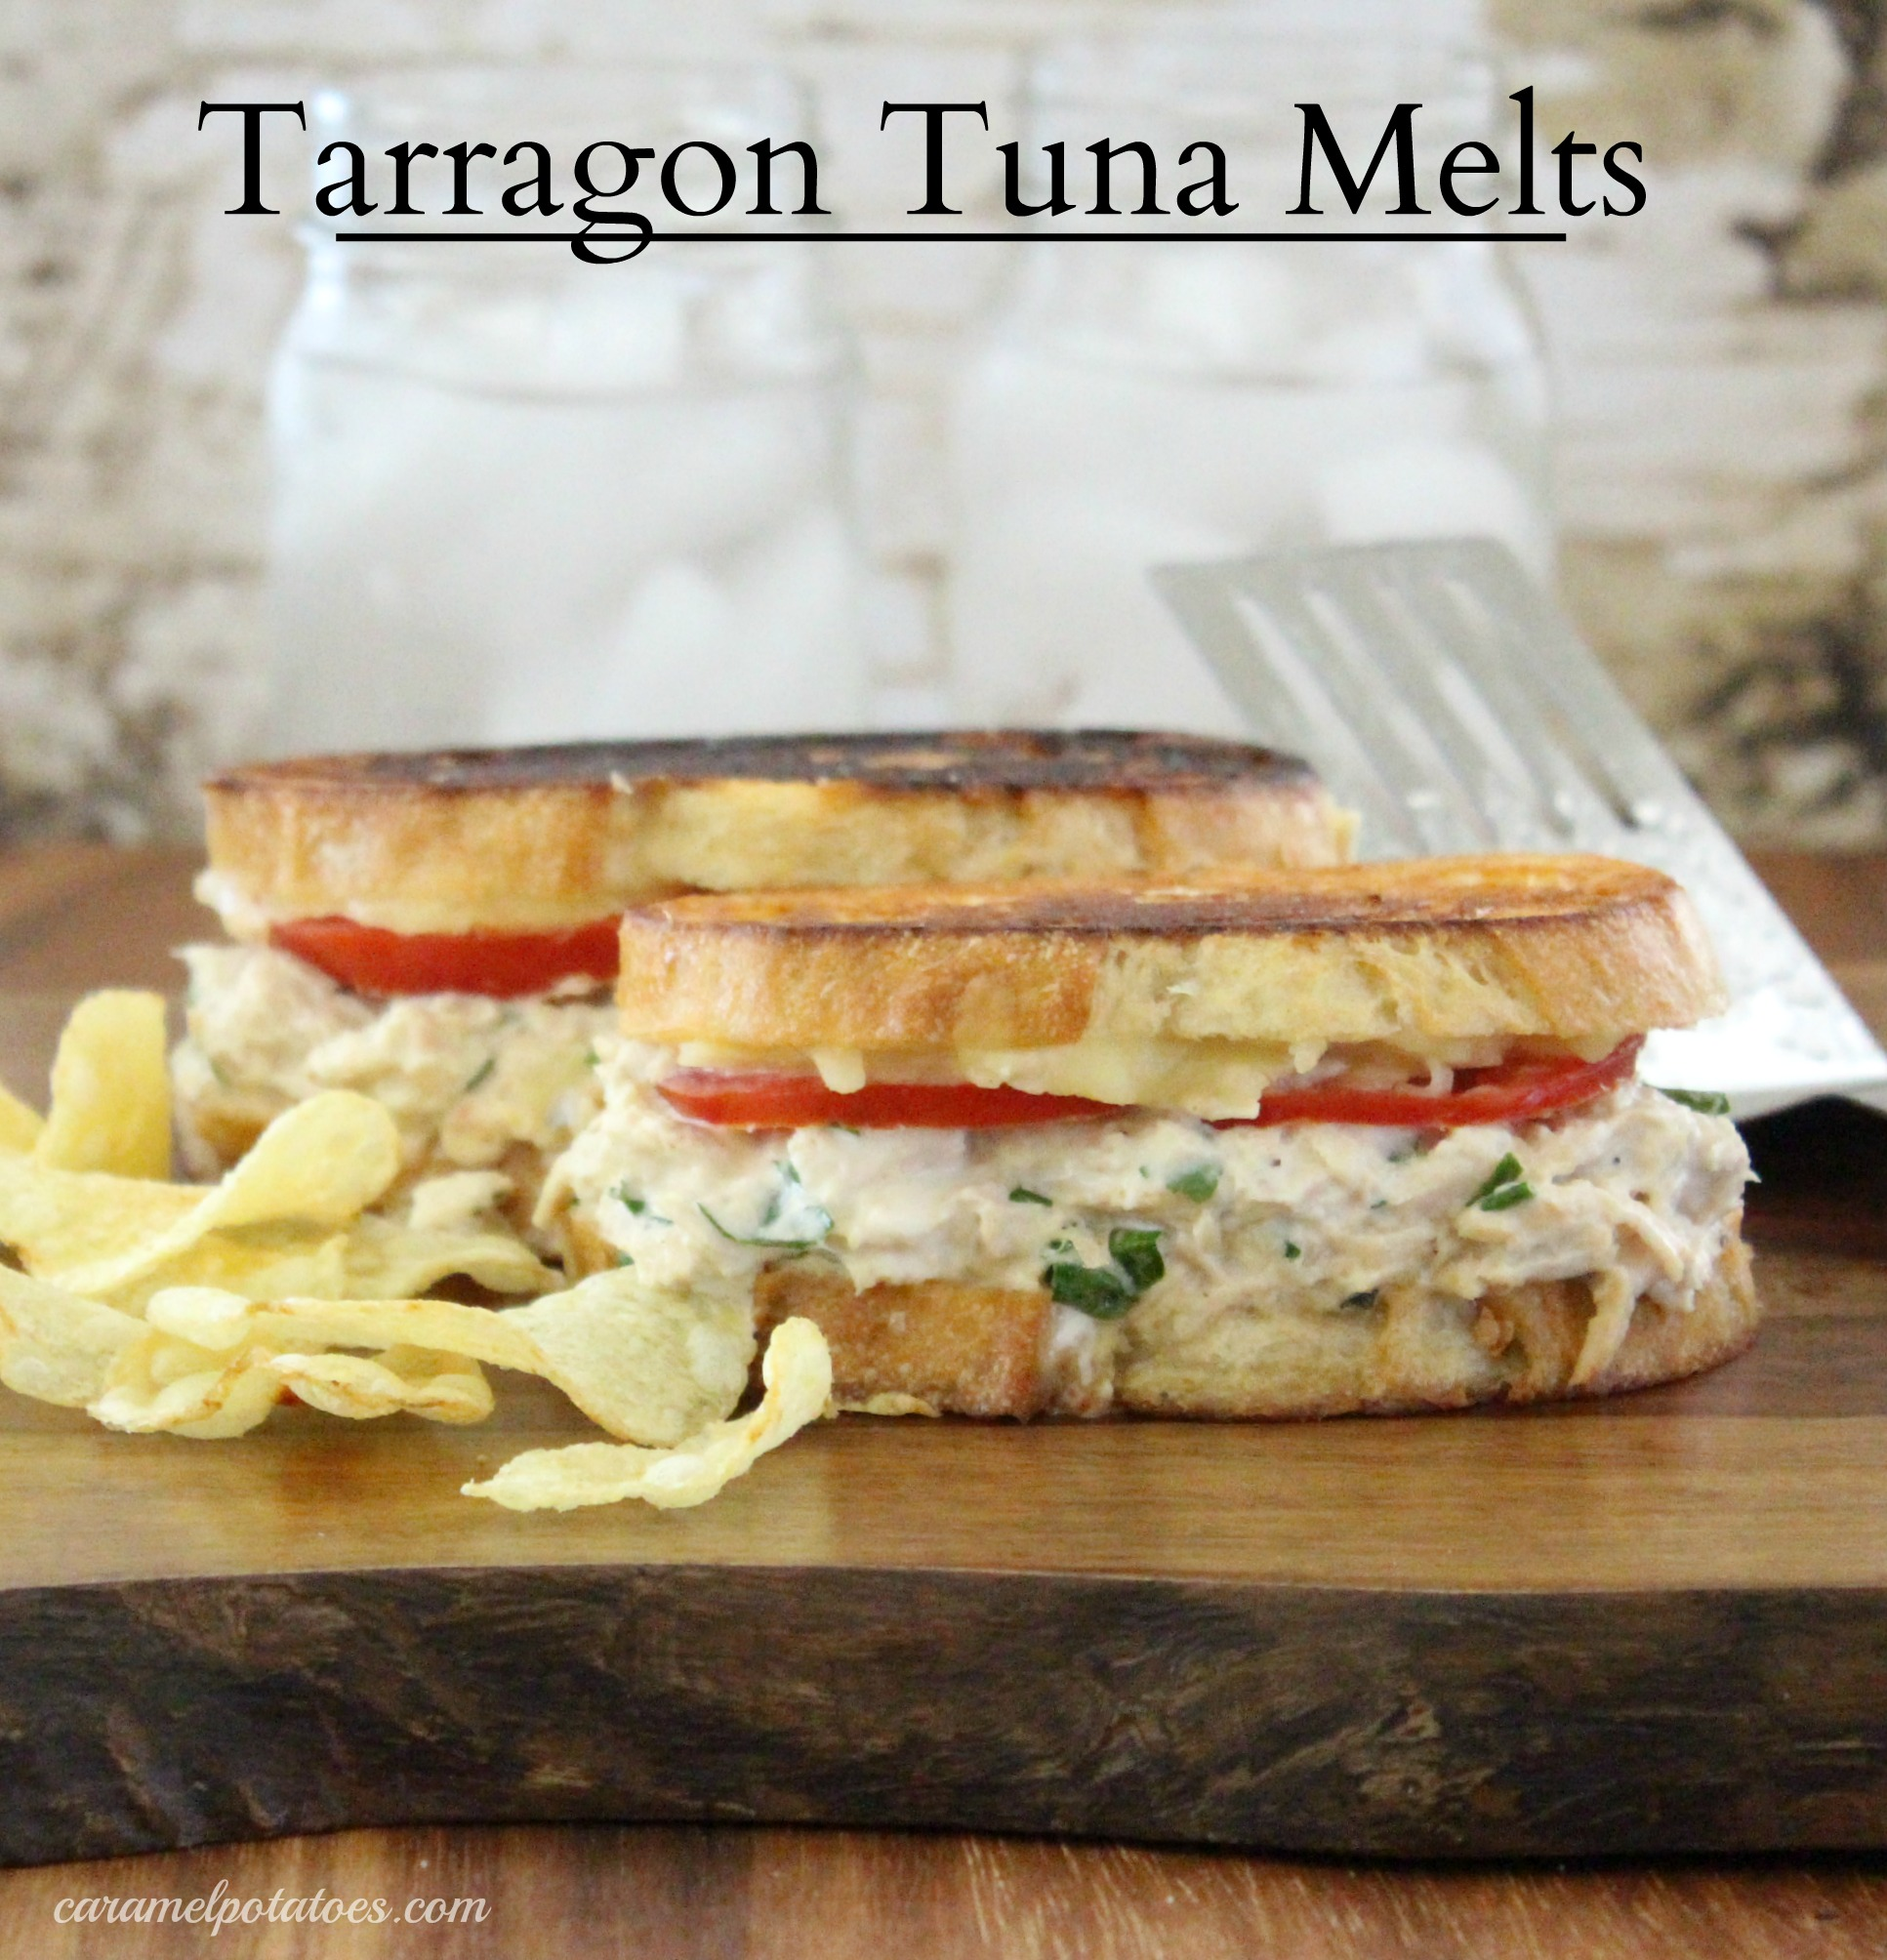 Caramel Potatoes » Tarragon Tuna Melts